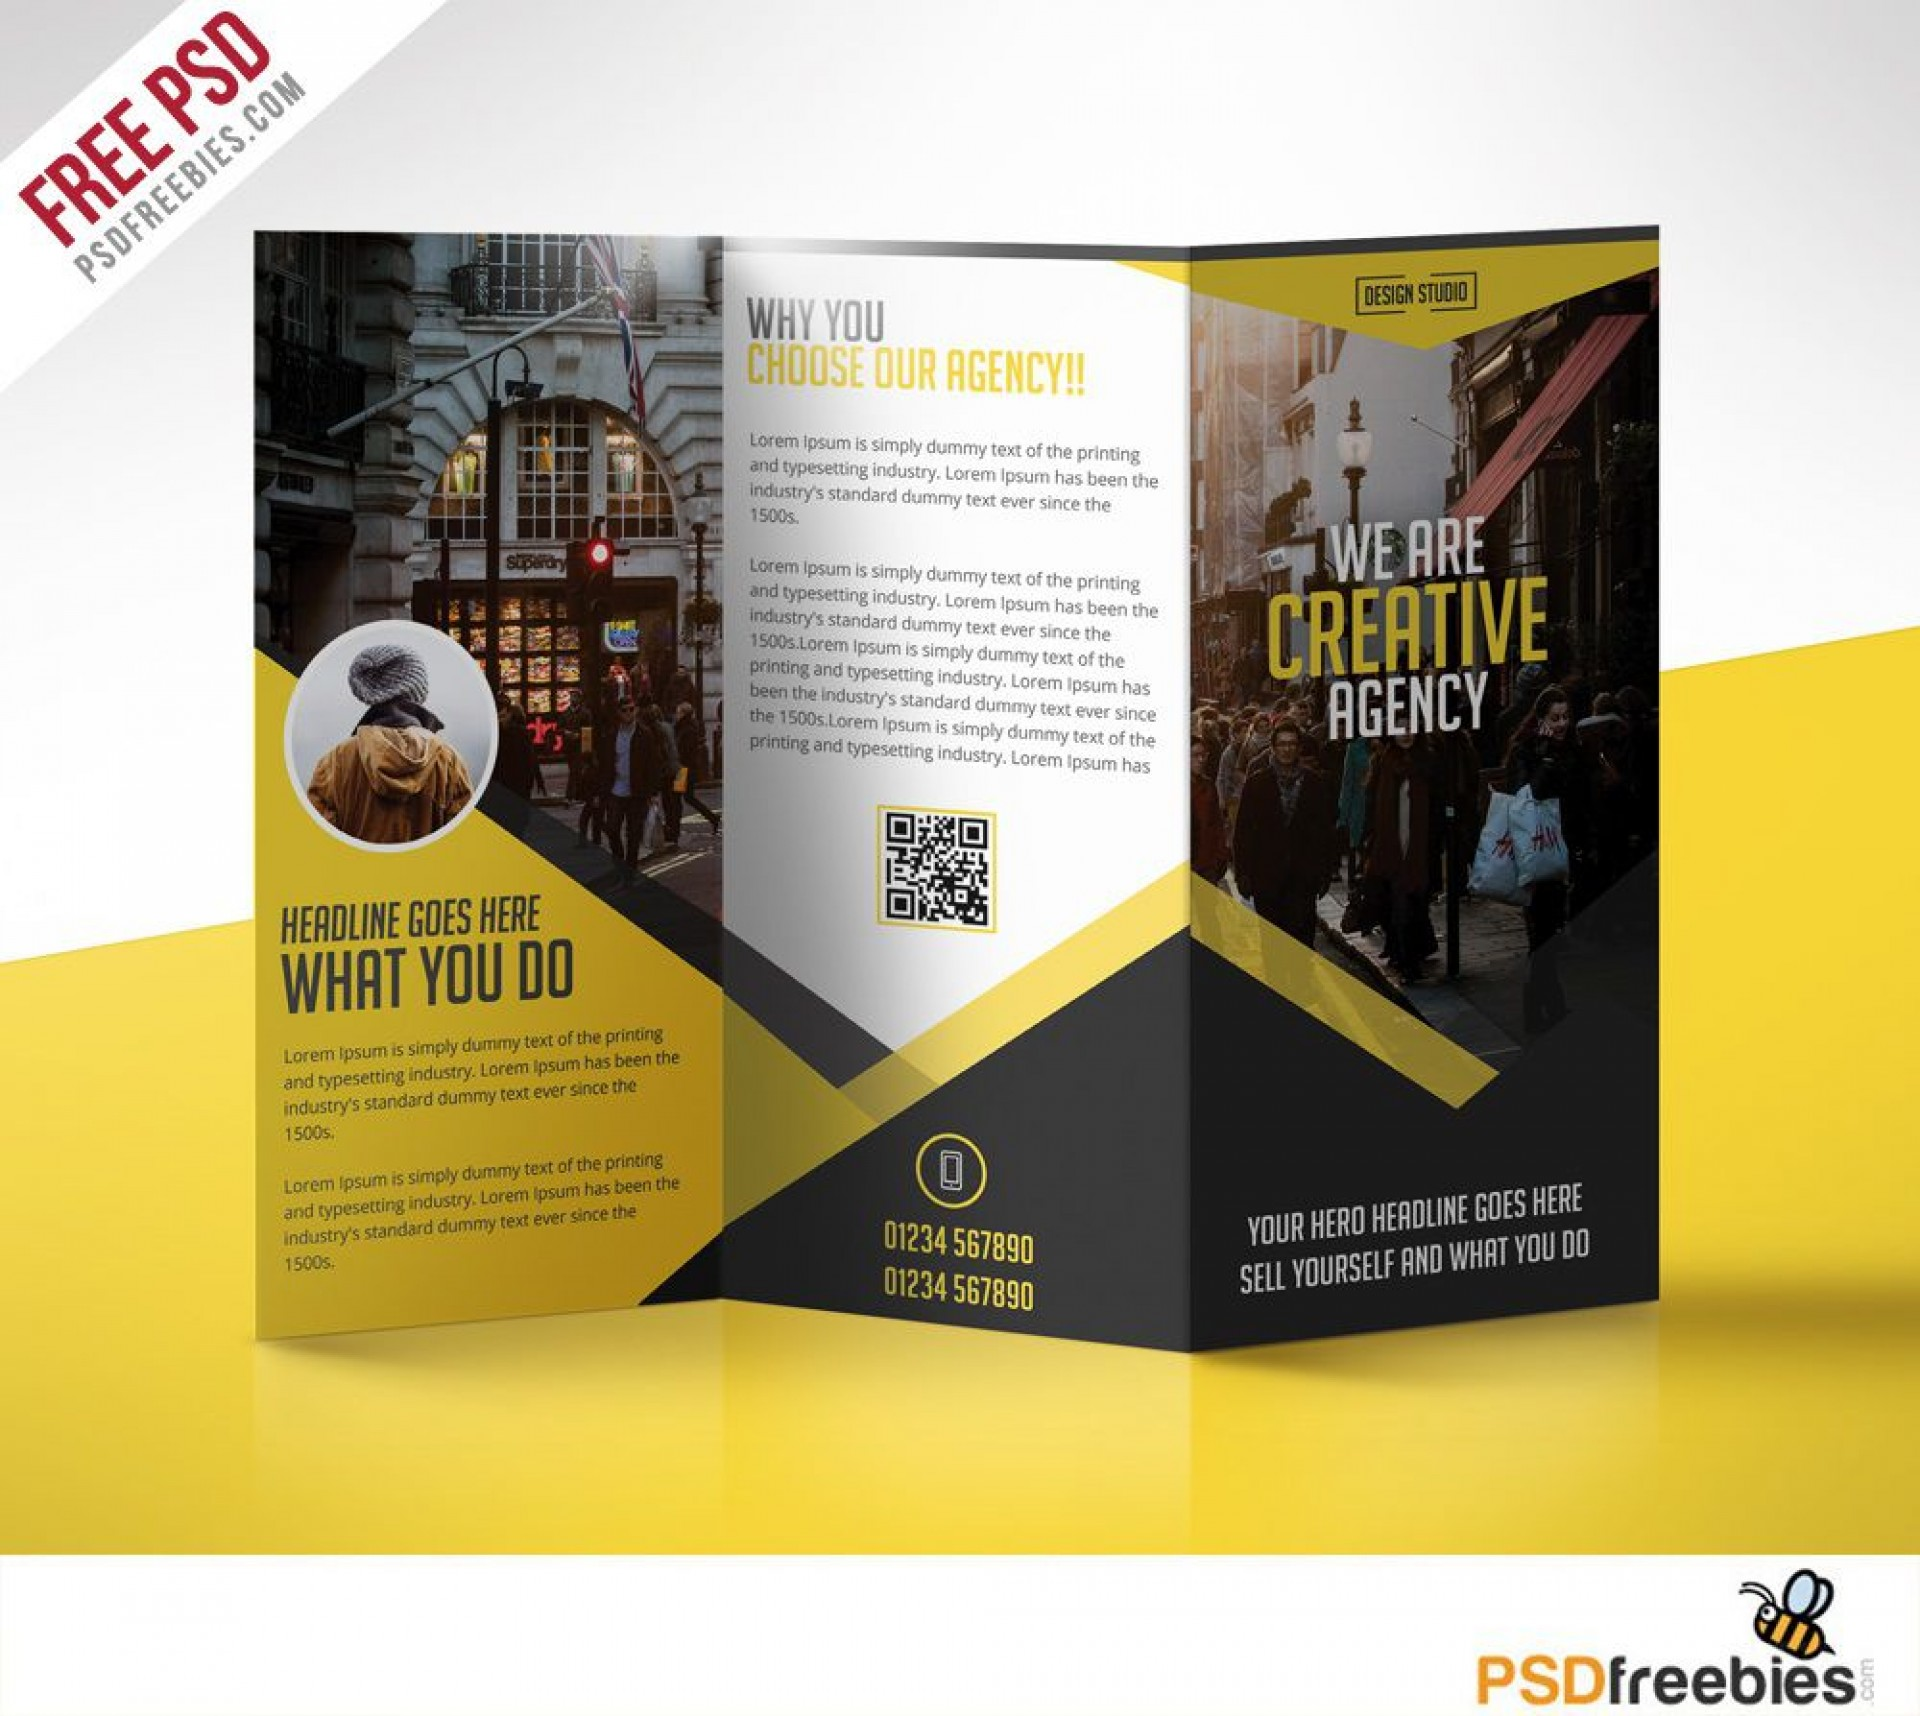 009 Incredible Free Brochure Template Psd File Front And Back Idea 1920